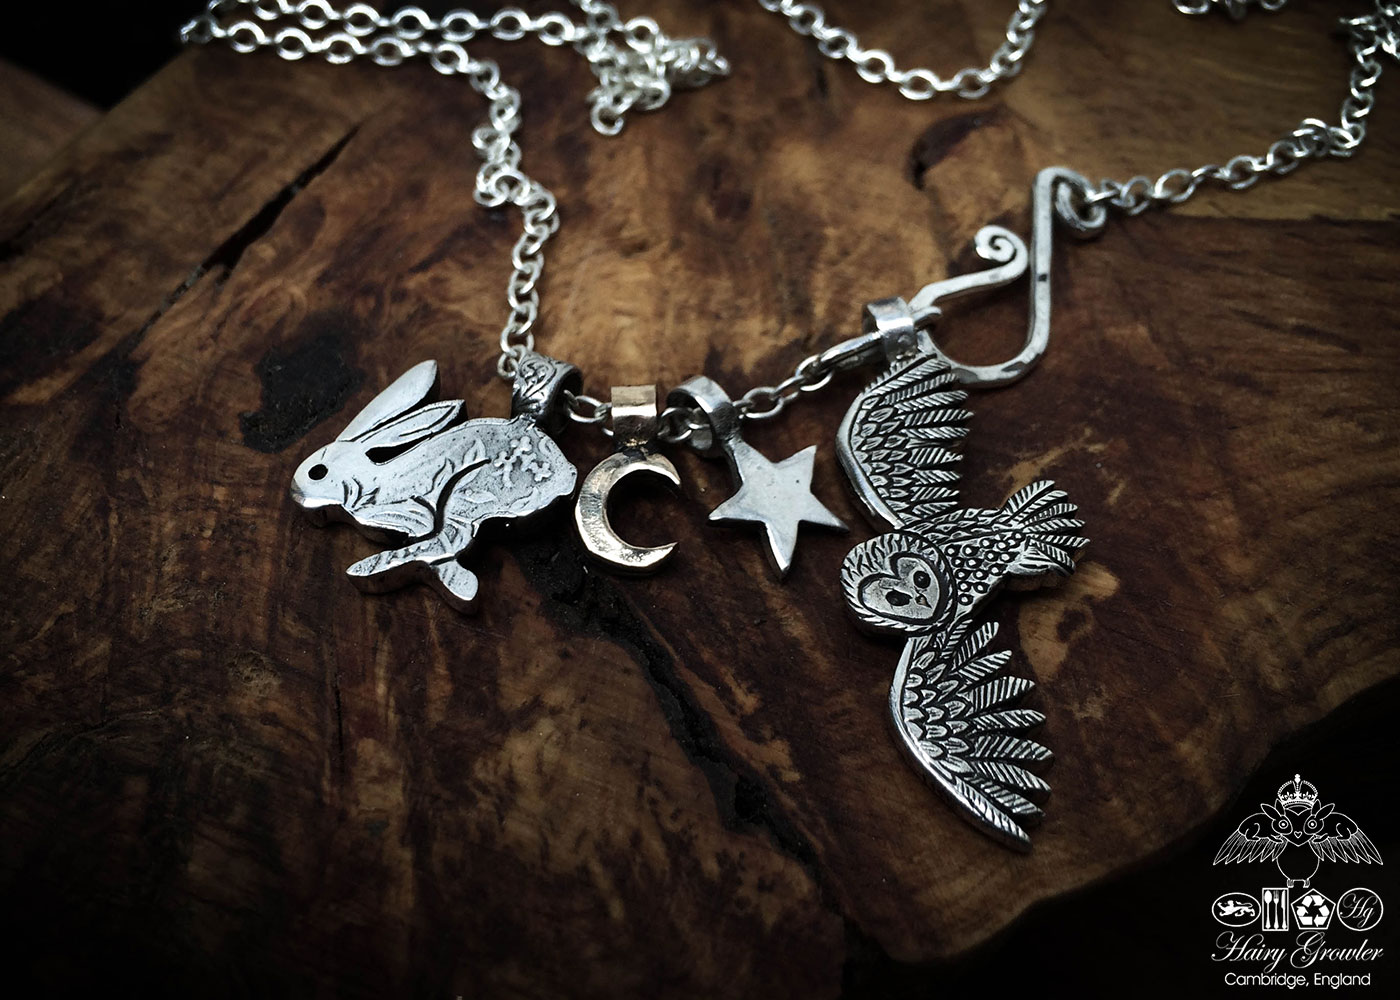 handmade and recycled silver coins running wild hare charm for a tree sculpture, necklace or bracelet